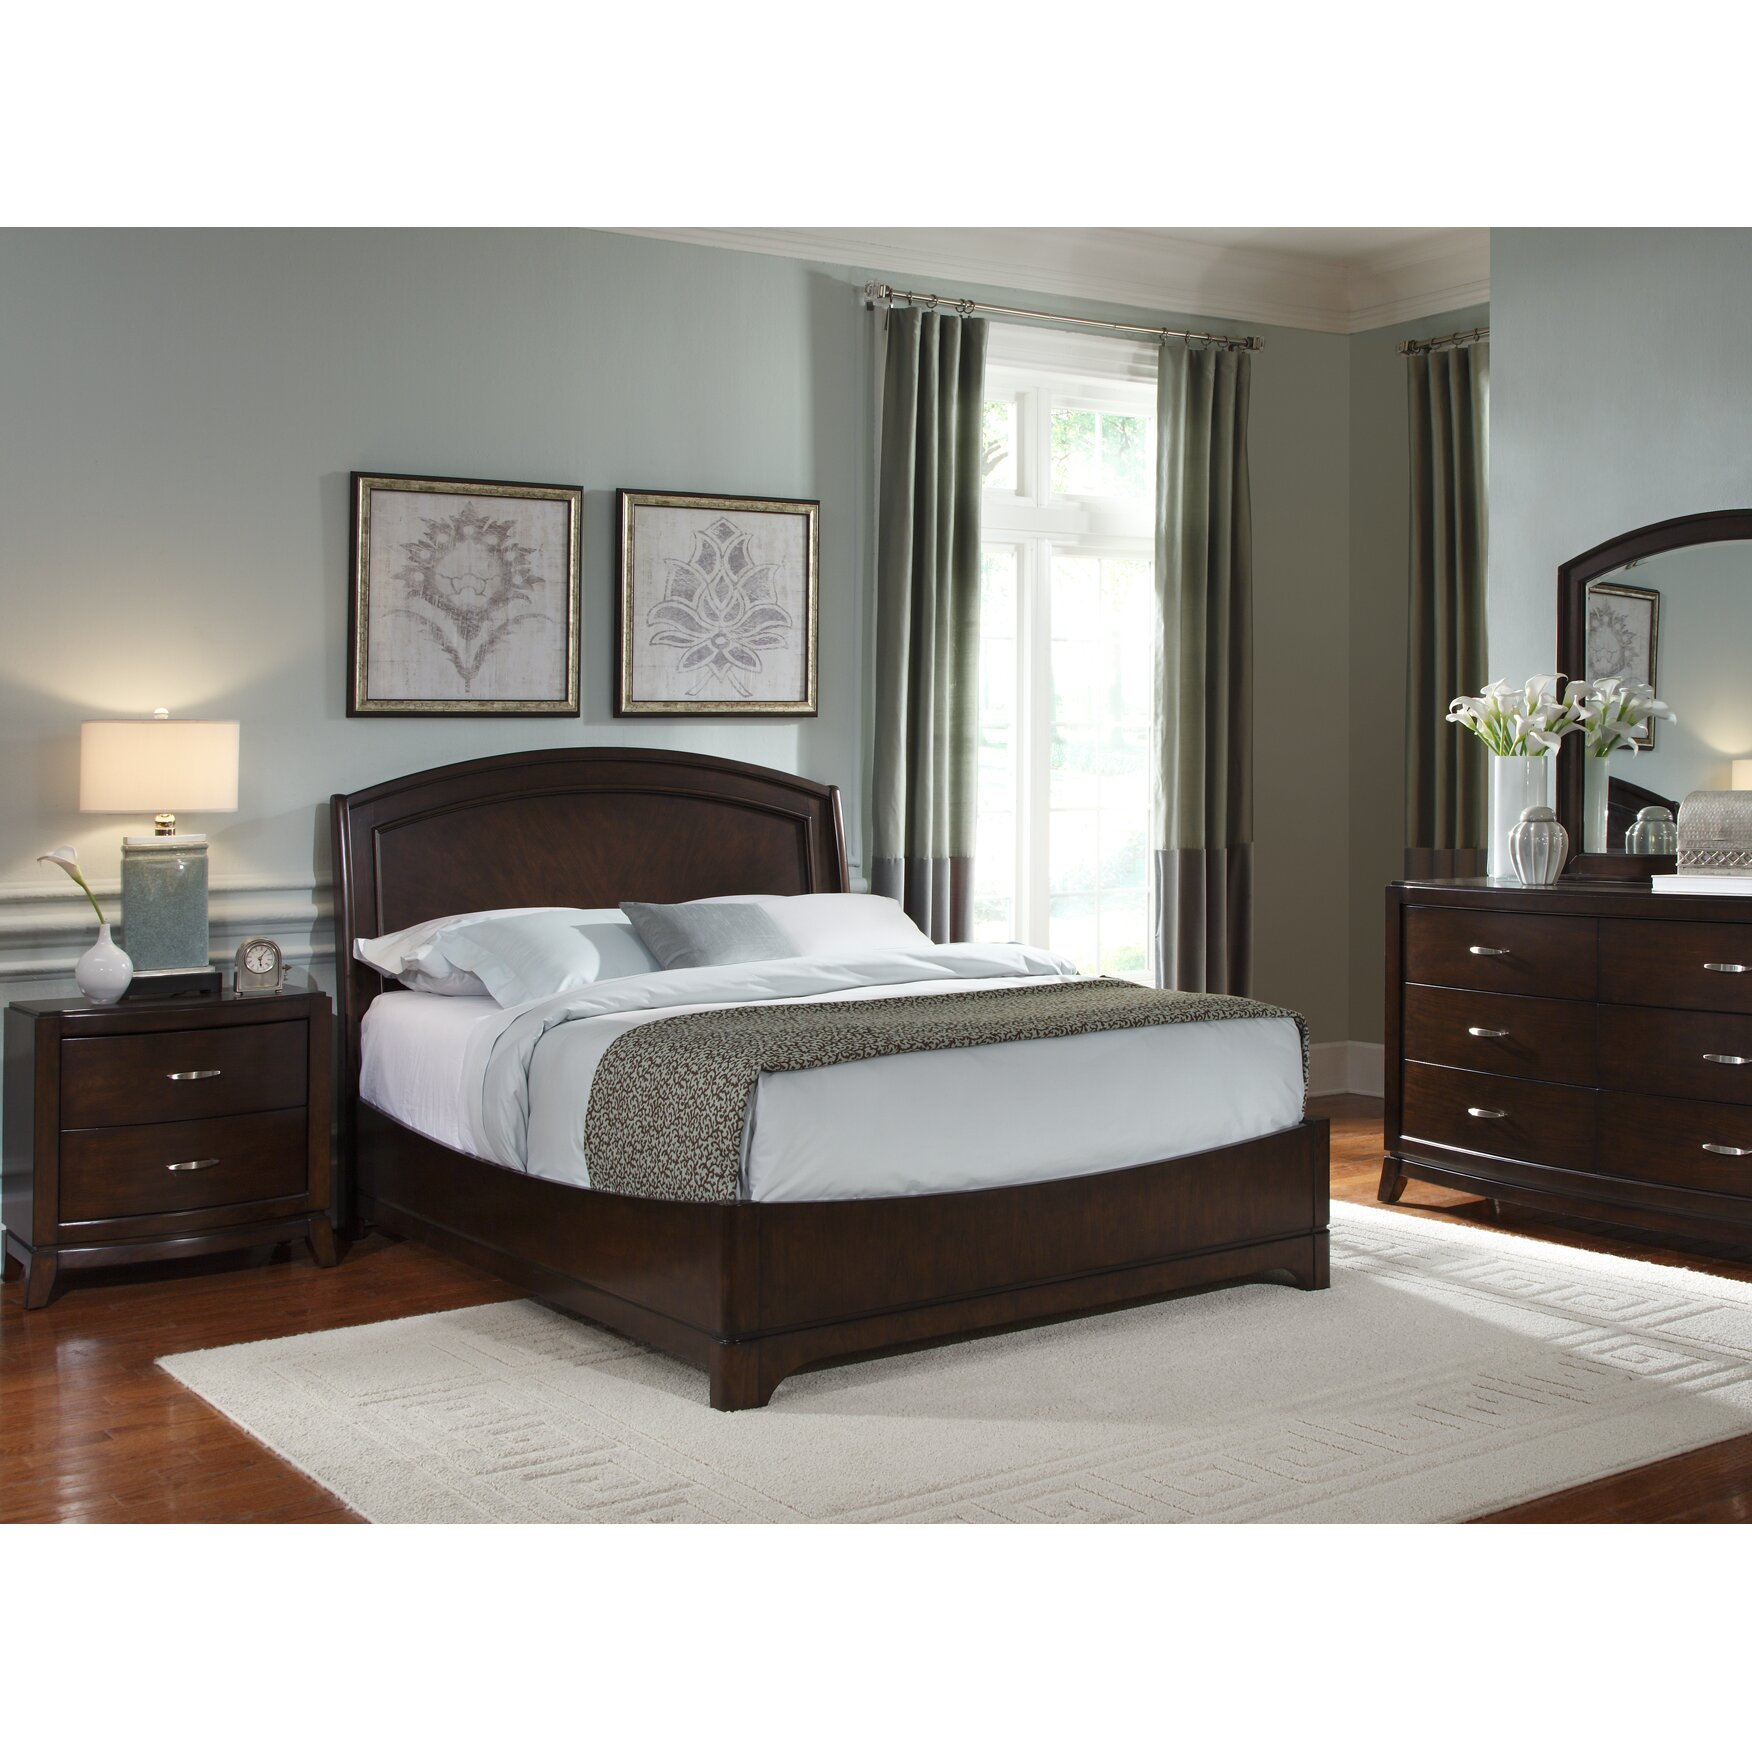 Darby Home Co Platform Customizable Bedroom Set & Reviews